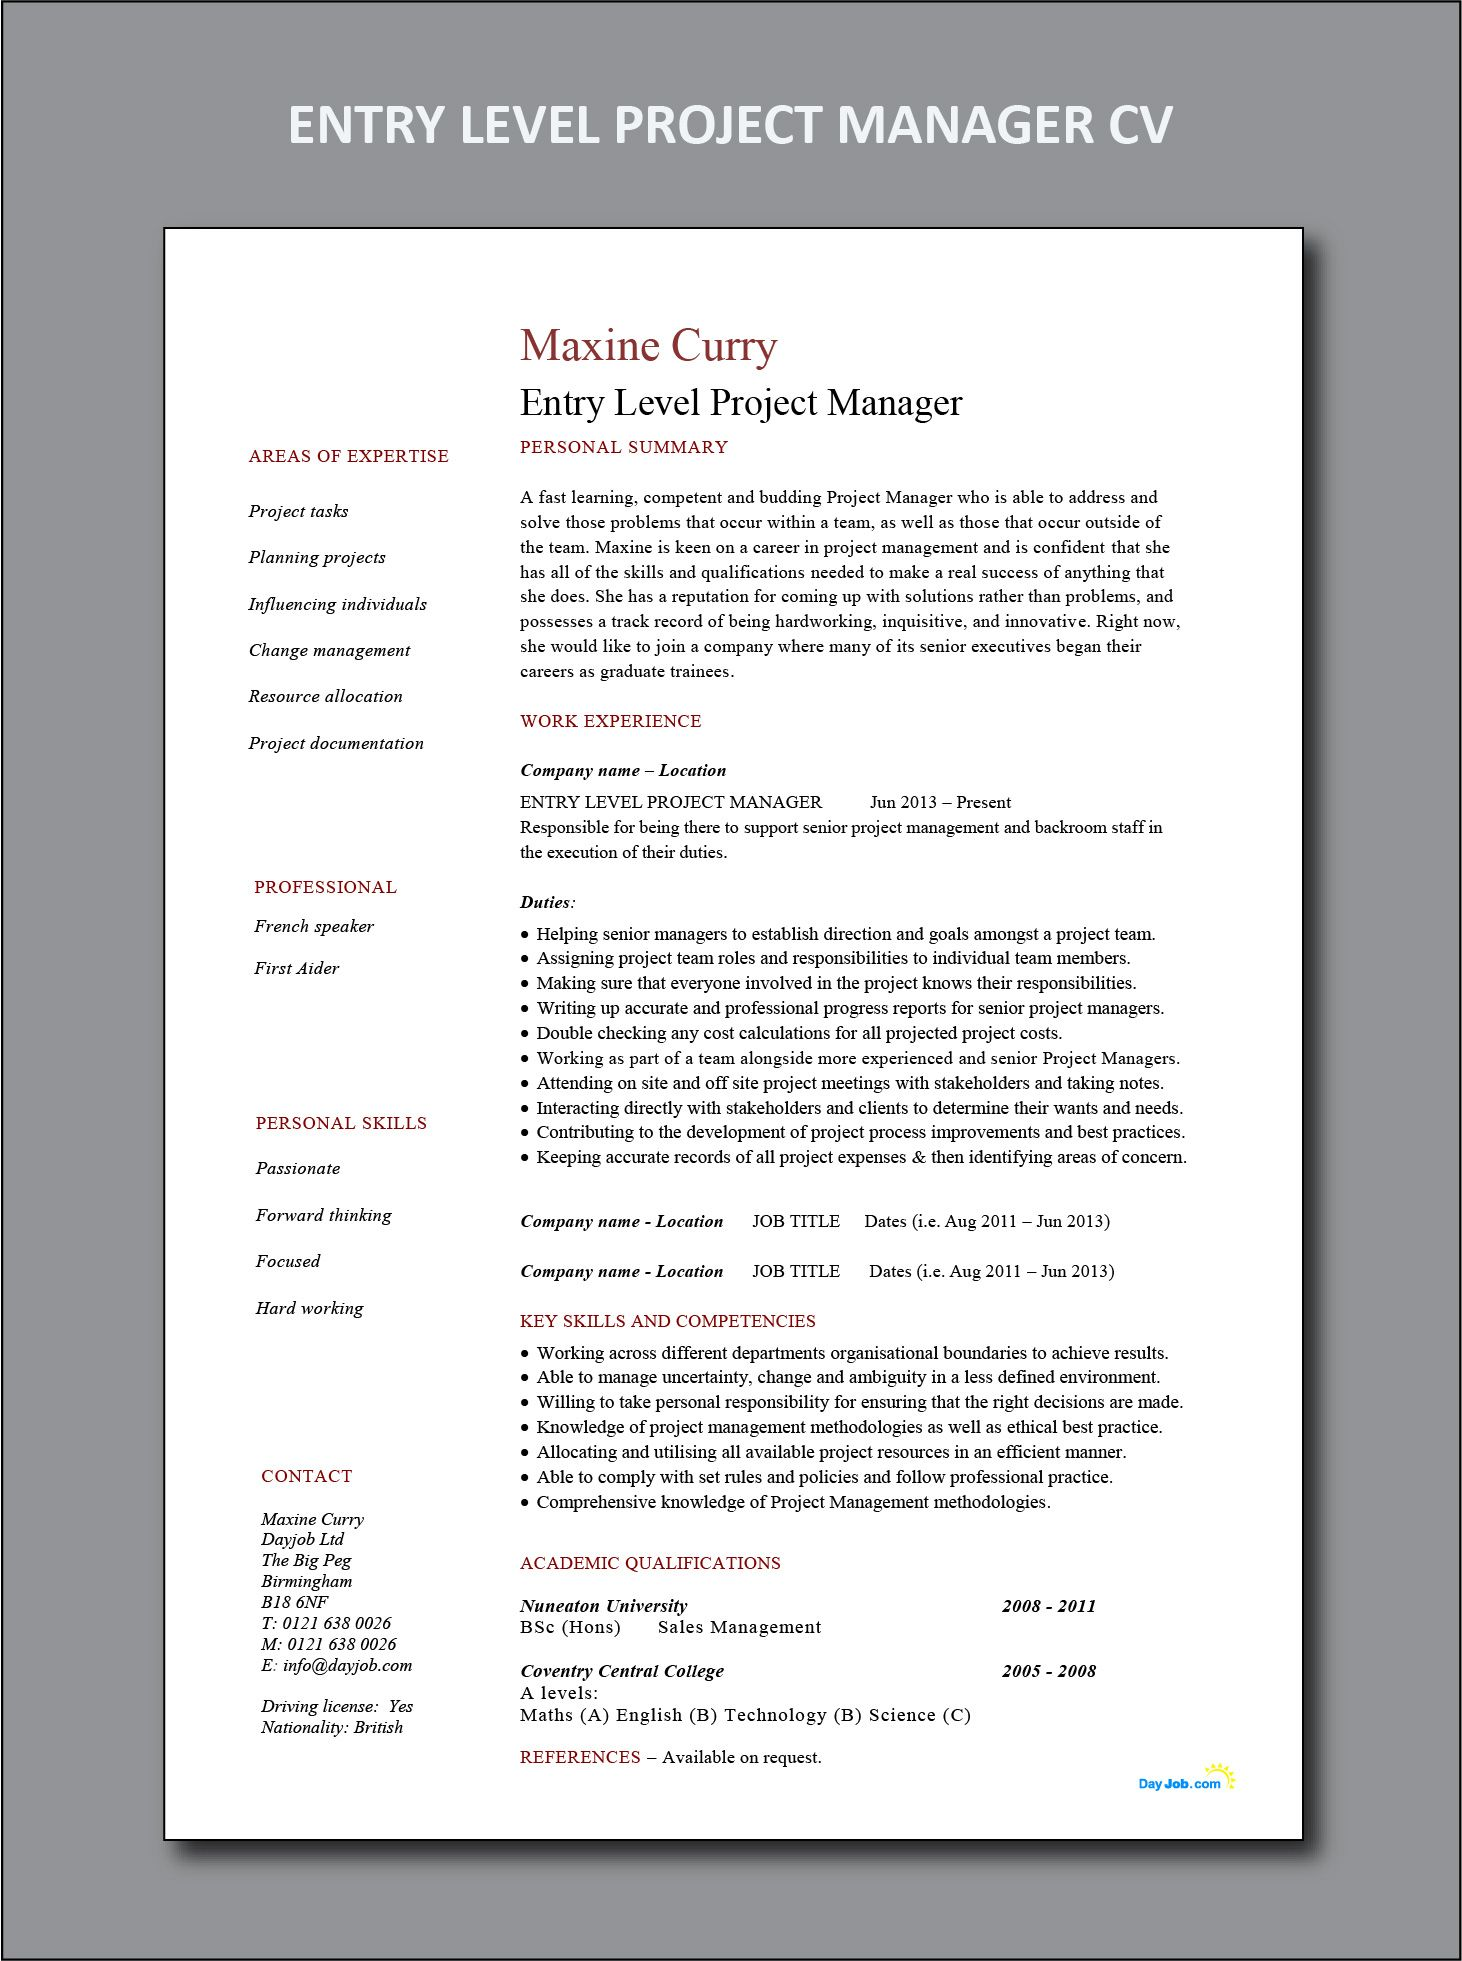 Entry Level Project Manager CV and resume example | Project ...